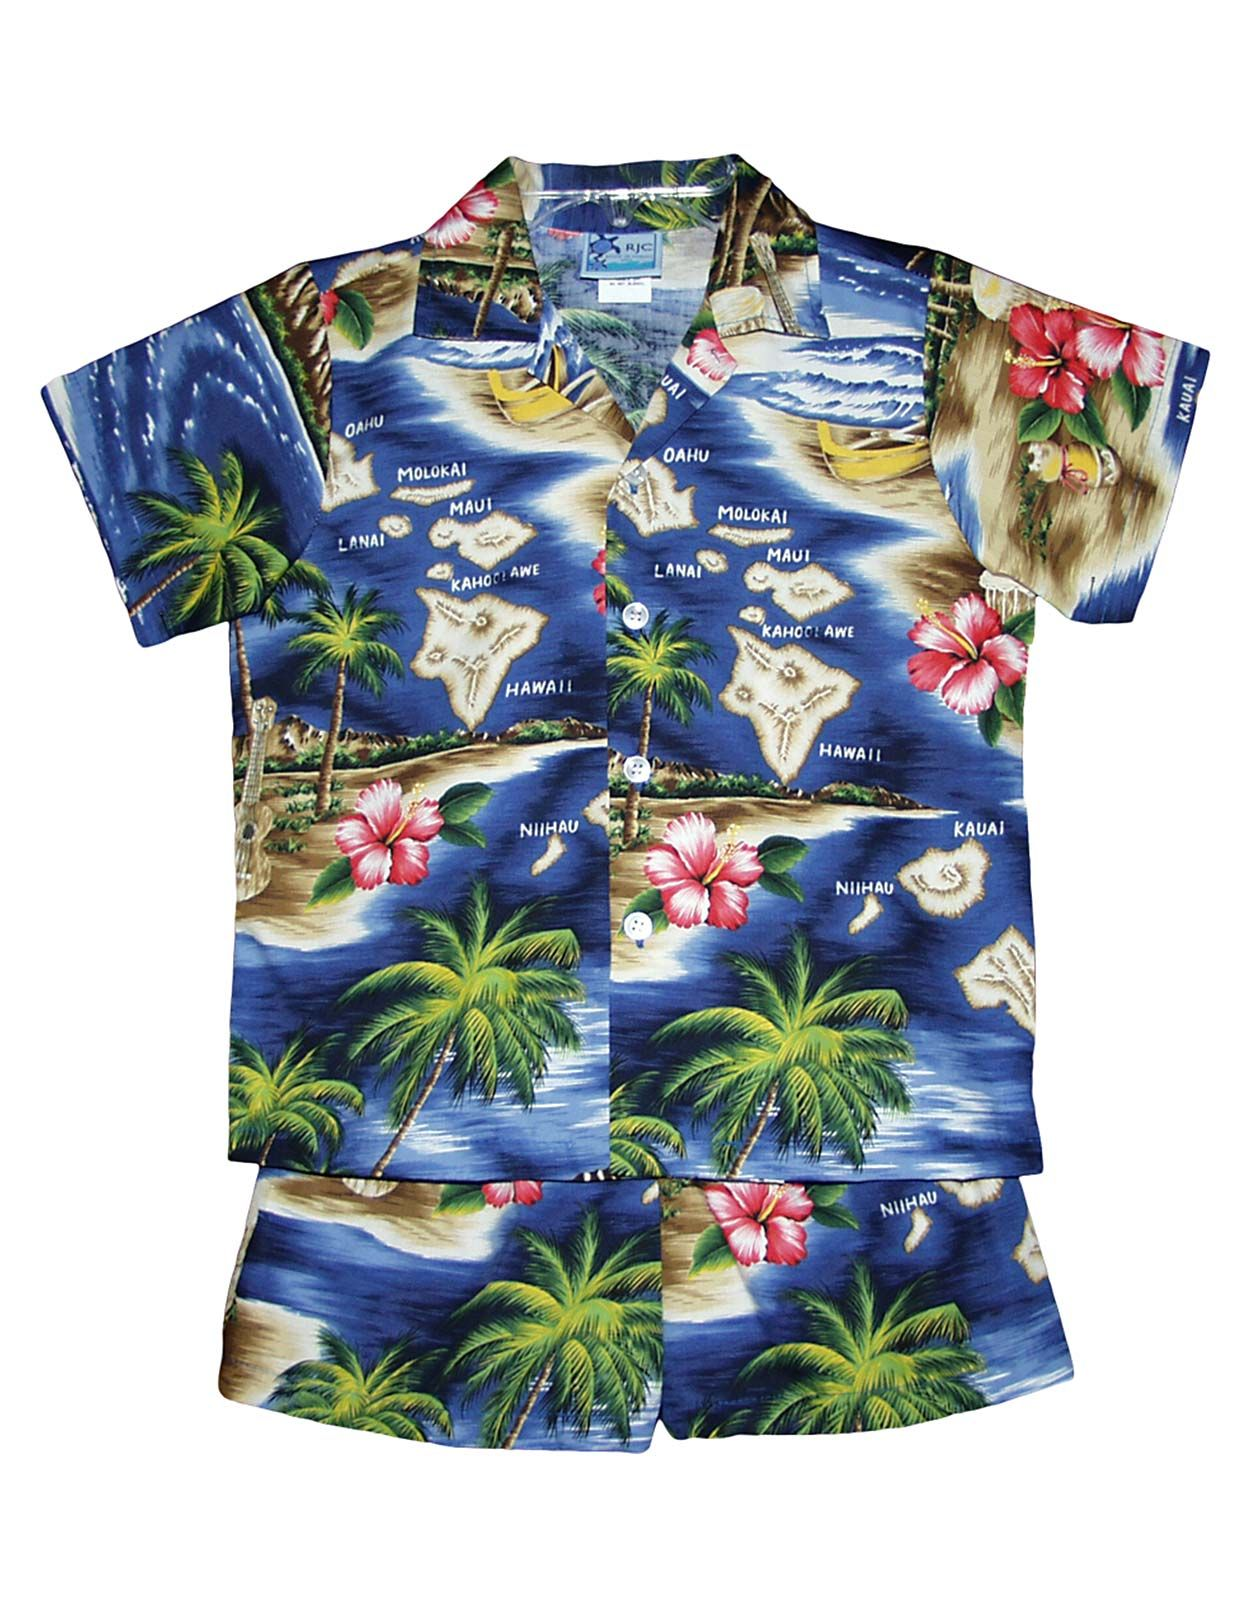 c3d7f35e3e3 ... Cotton Cabana Set at Shaka Time Hawaii Clothing StoreFree Shipping from  Hawaii  hawaiianclothes  hawaiianshirt  hawaiianshirts  hawaiiandresses   dresses ...